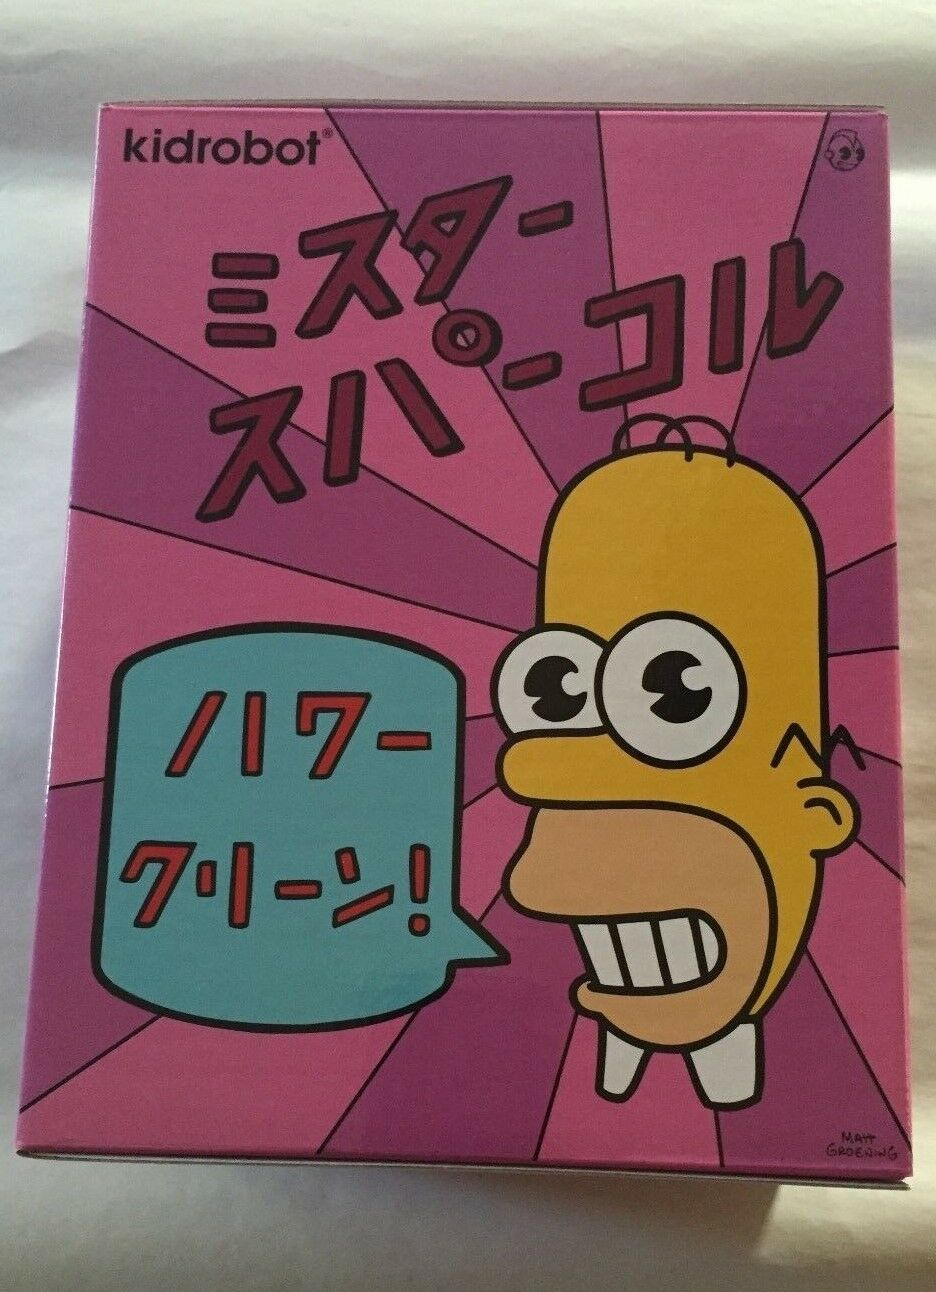 SDCC 2017 EXCLUSIVE KIDROBOT THE SIMPSONS MR. SPARKLE HOMER FIGURE PINK SOLD OUT